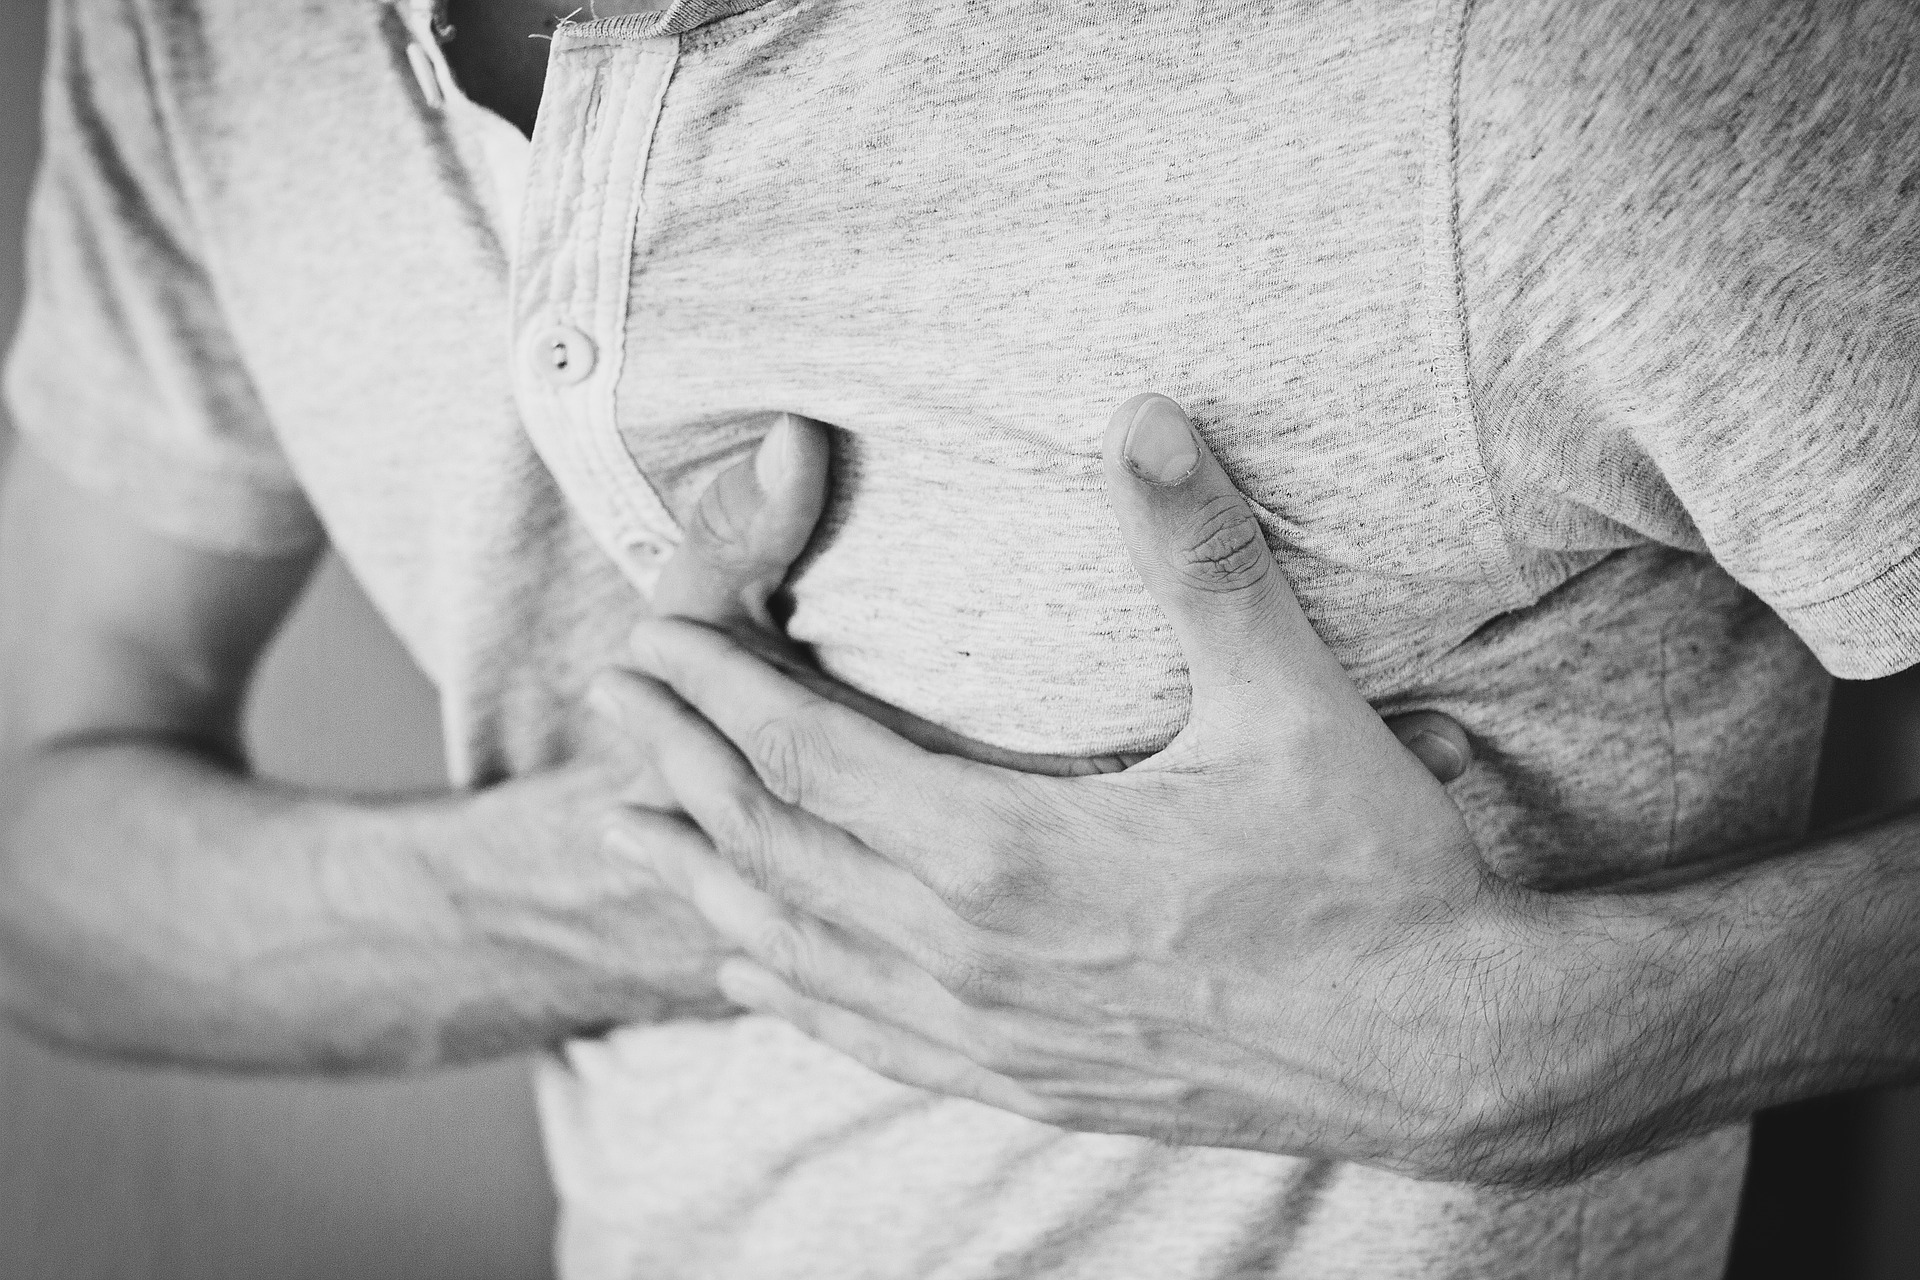 Black and white photo of man clutching chest, representing the need for corporate CPR training